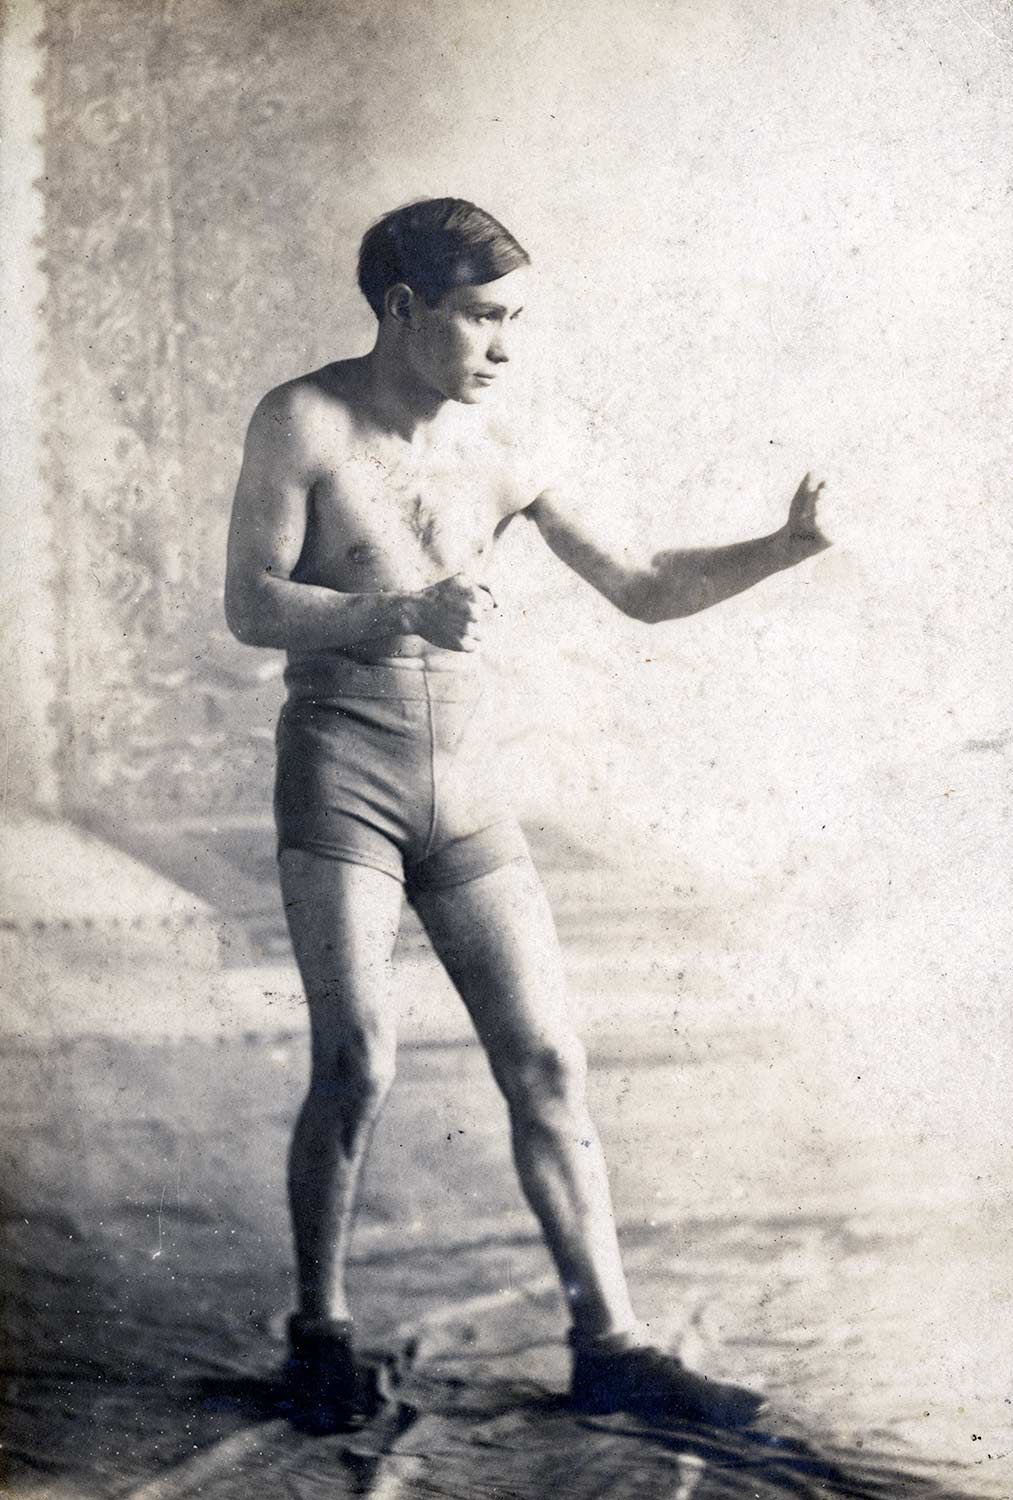 Louis Berland boxed professionally before joining the army. On February 25, 1919, he won the First Division lightweight championship at Montbaur Arena in Germany.